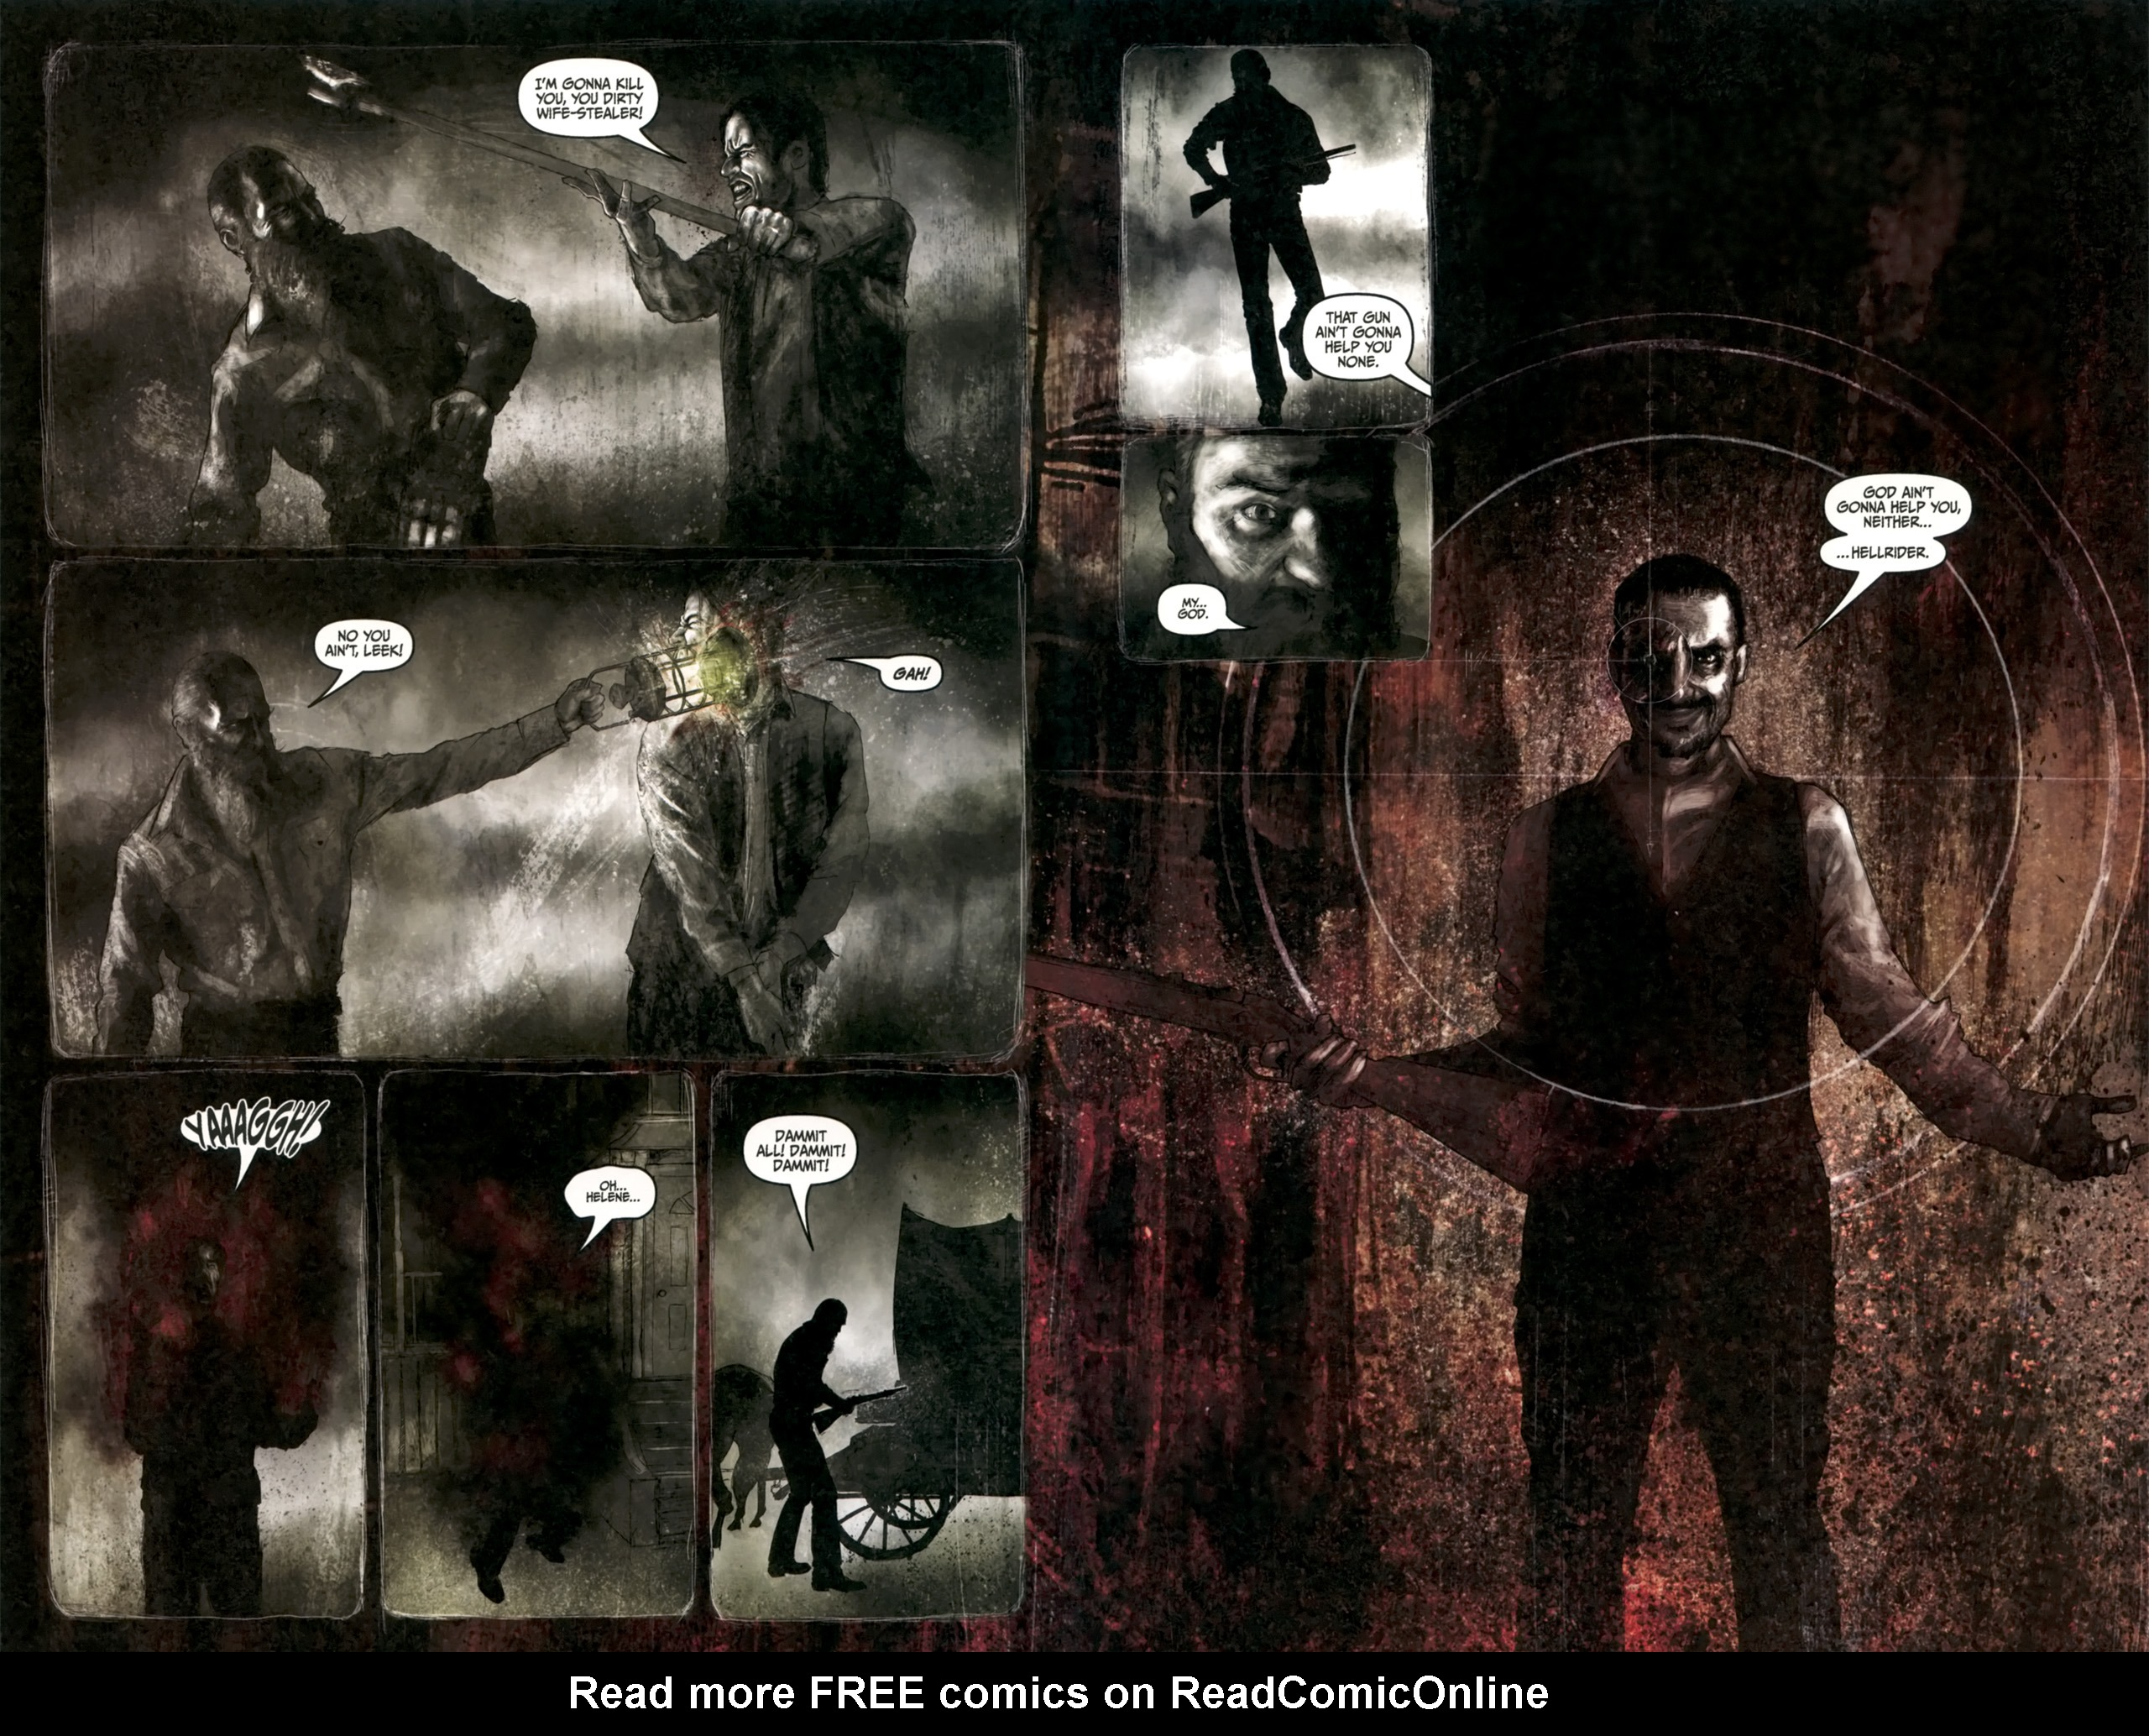 Read online Silent Hill: Past Life comic -  Issue #4 - 12